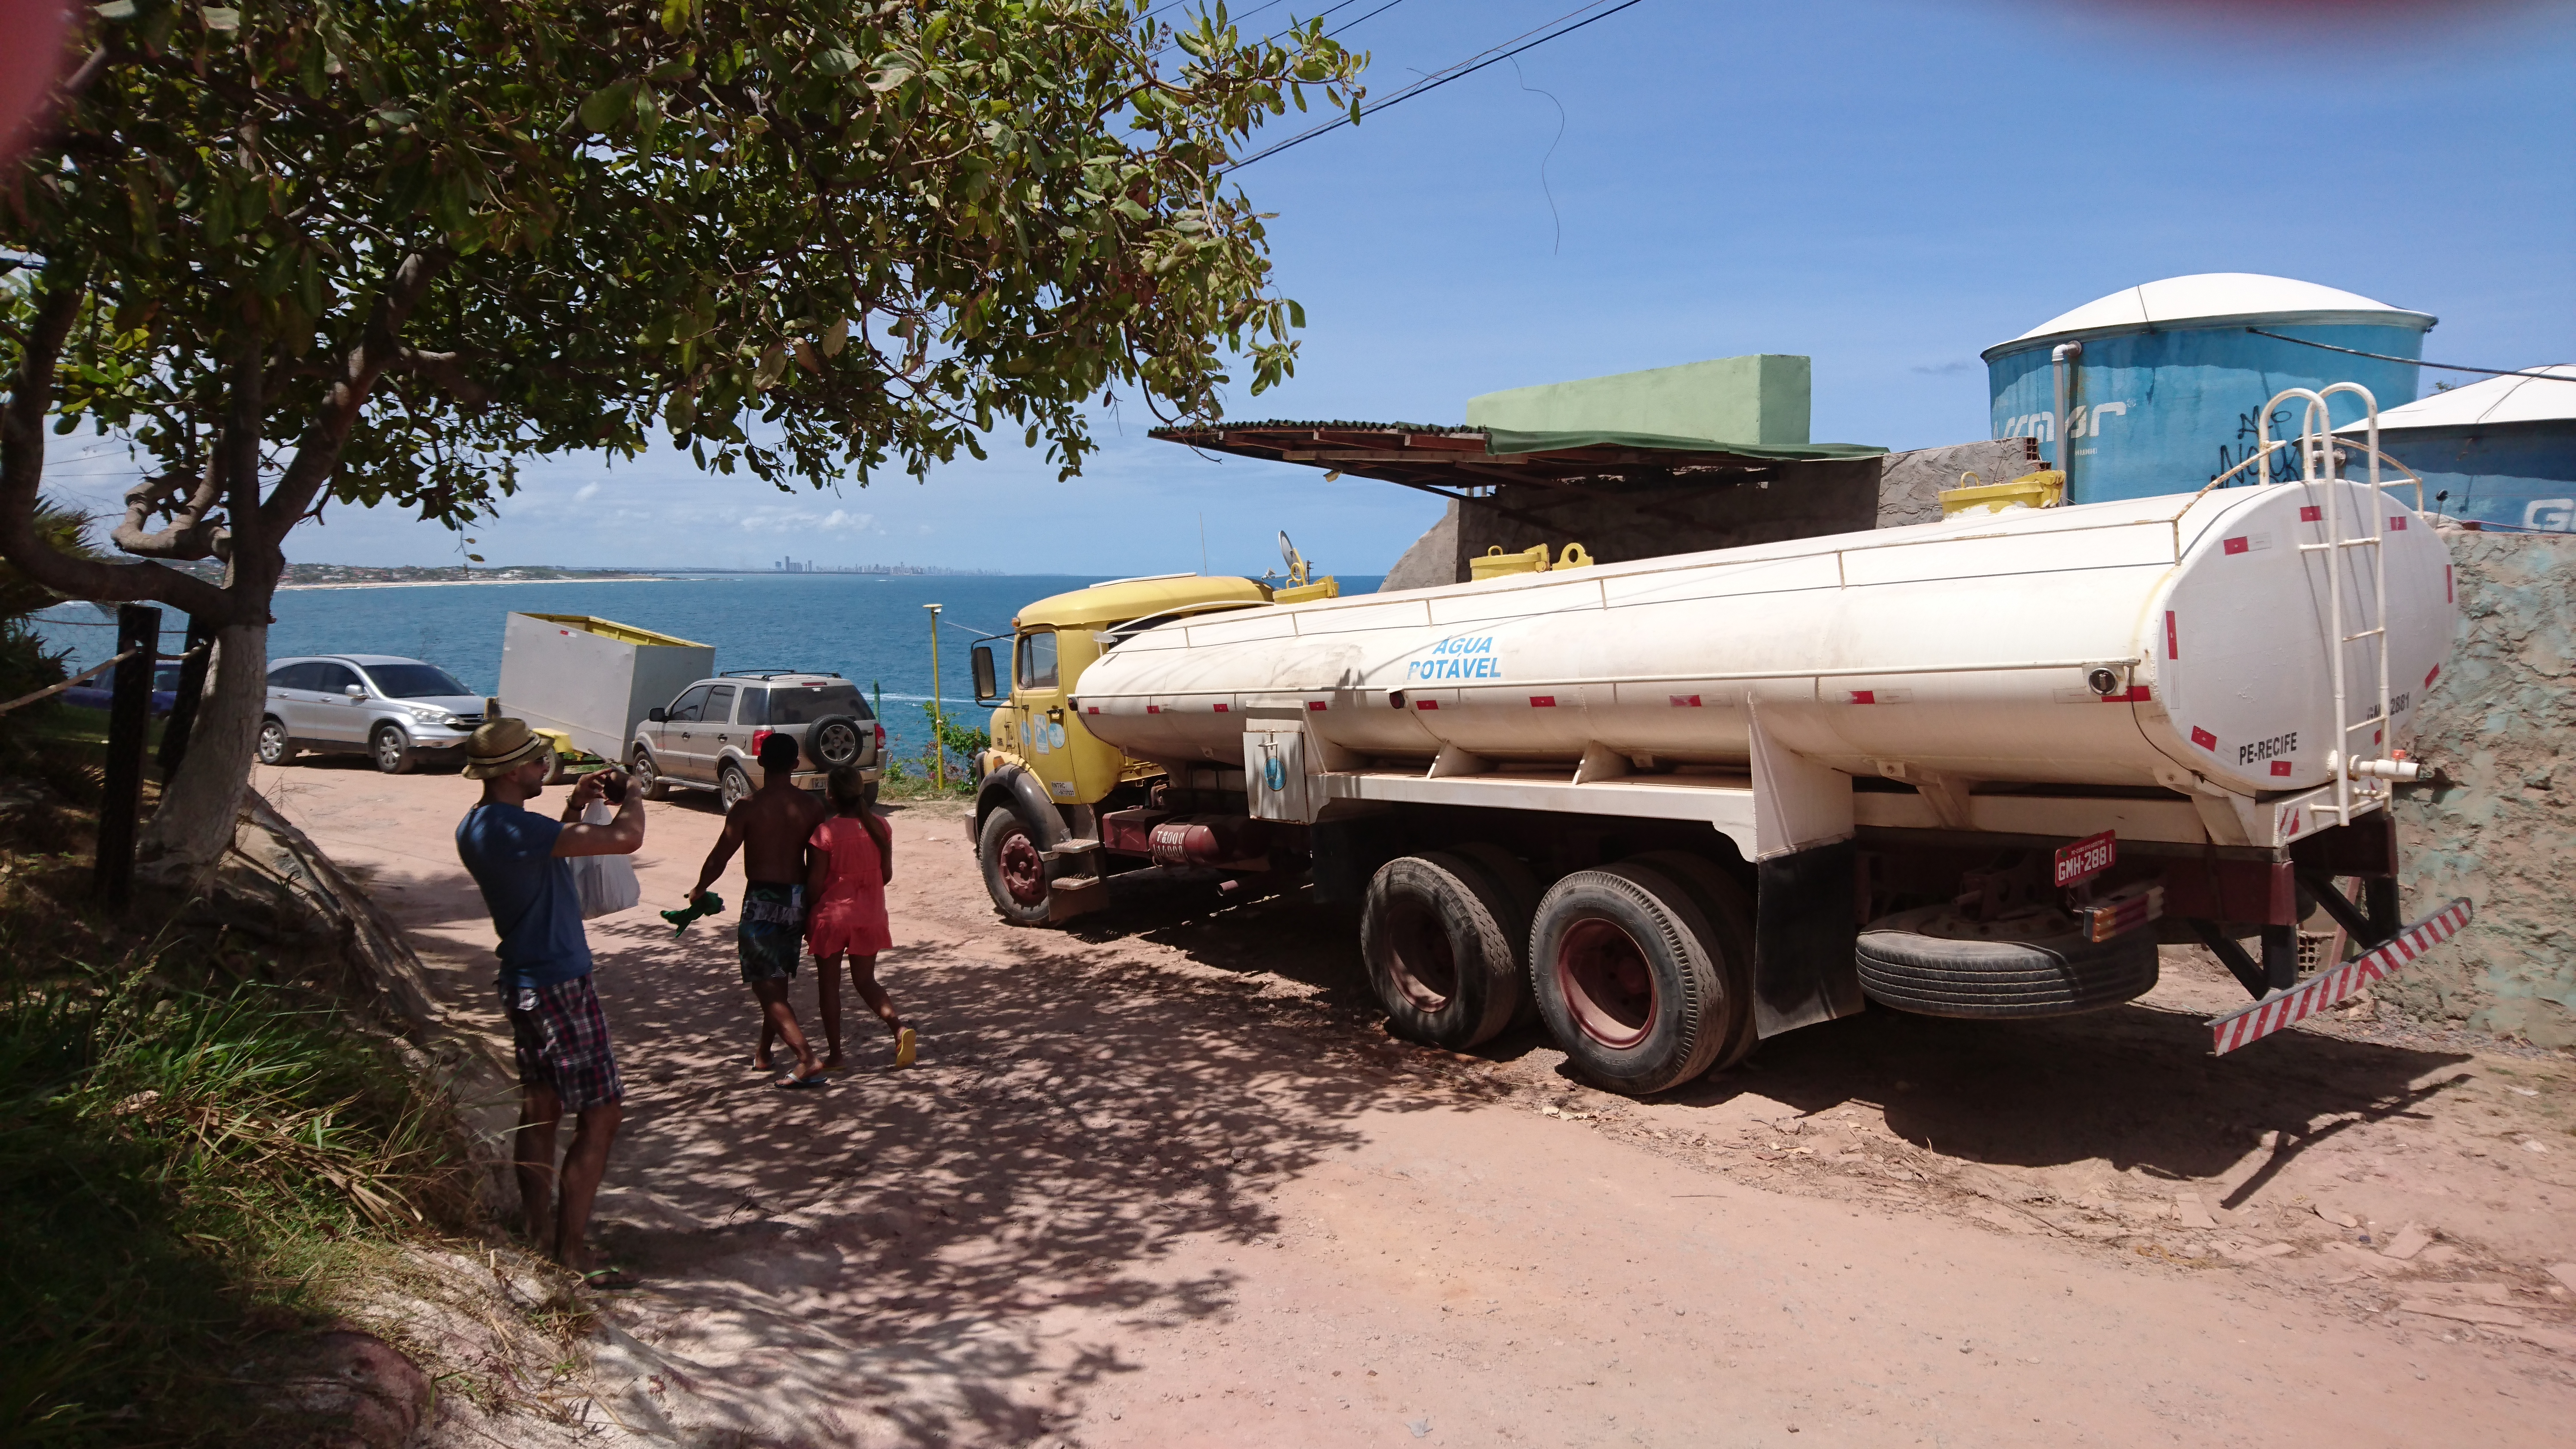 Water supply by truck in Brasil